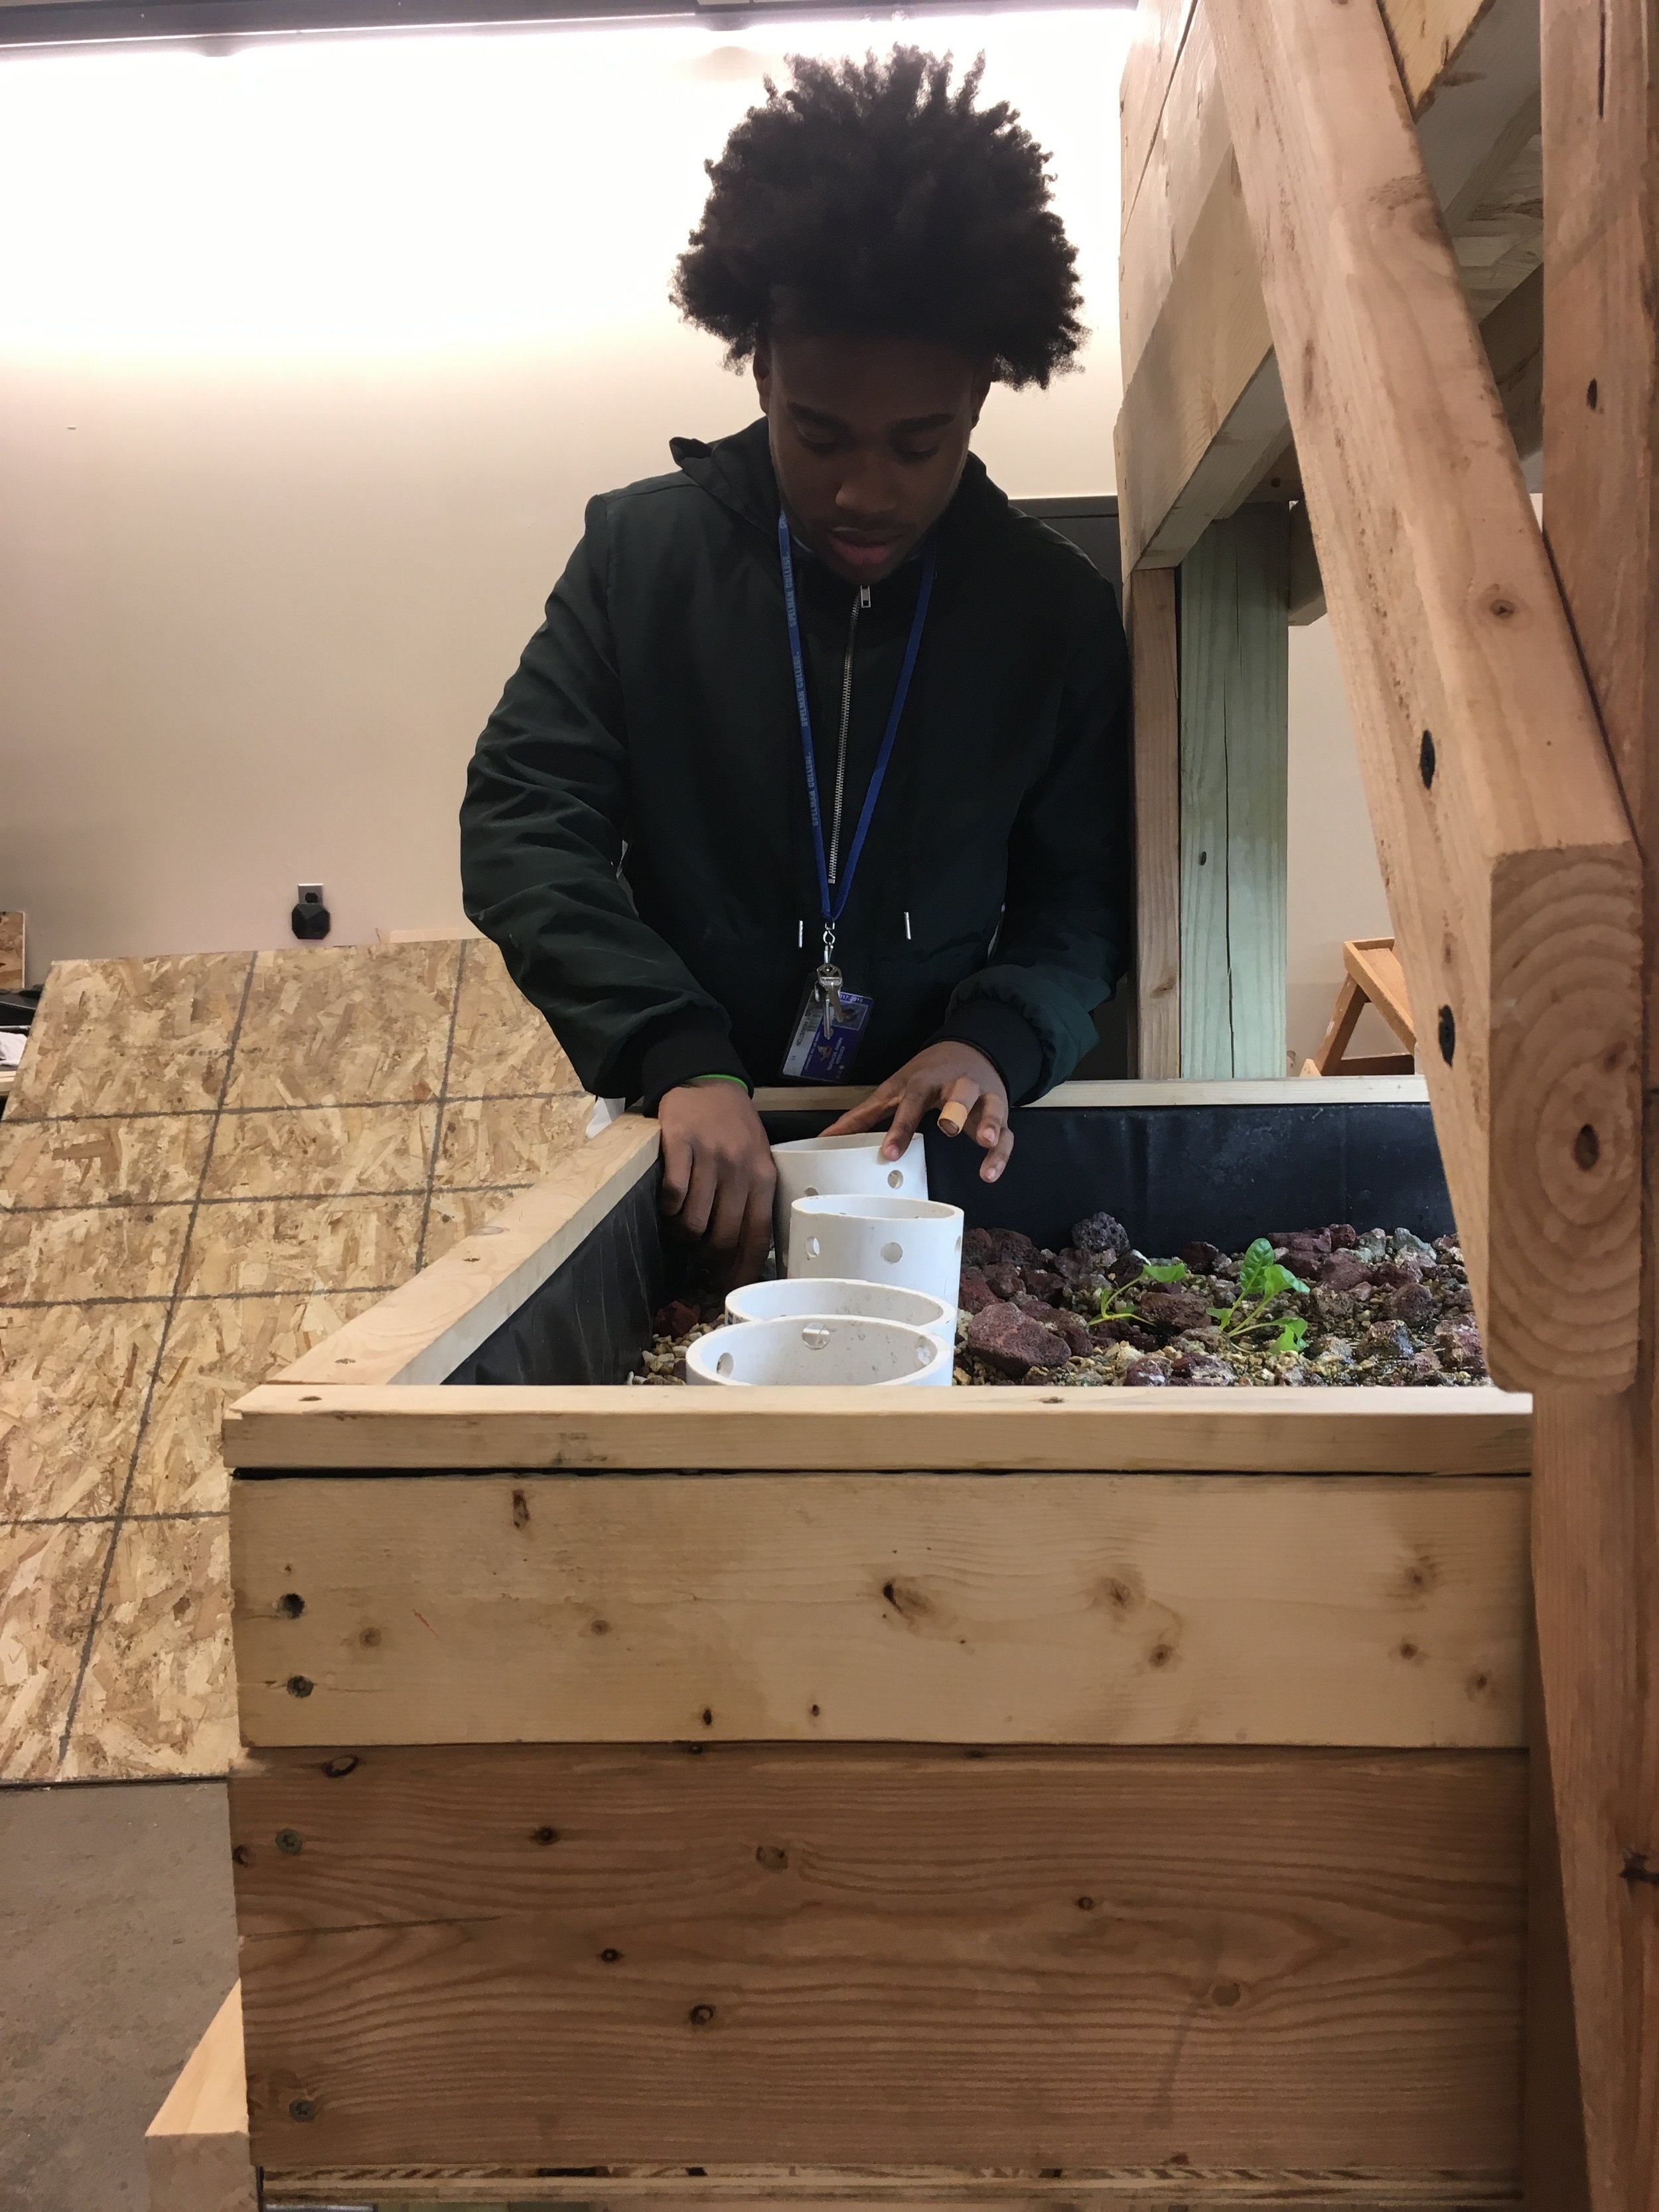 Anthony working on the aquaponics system